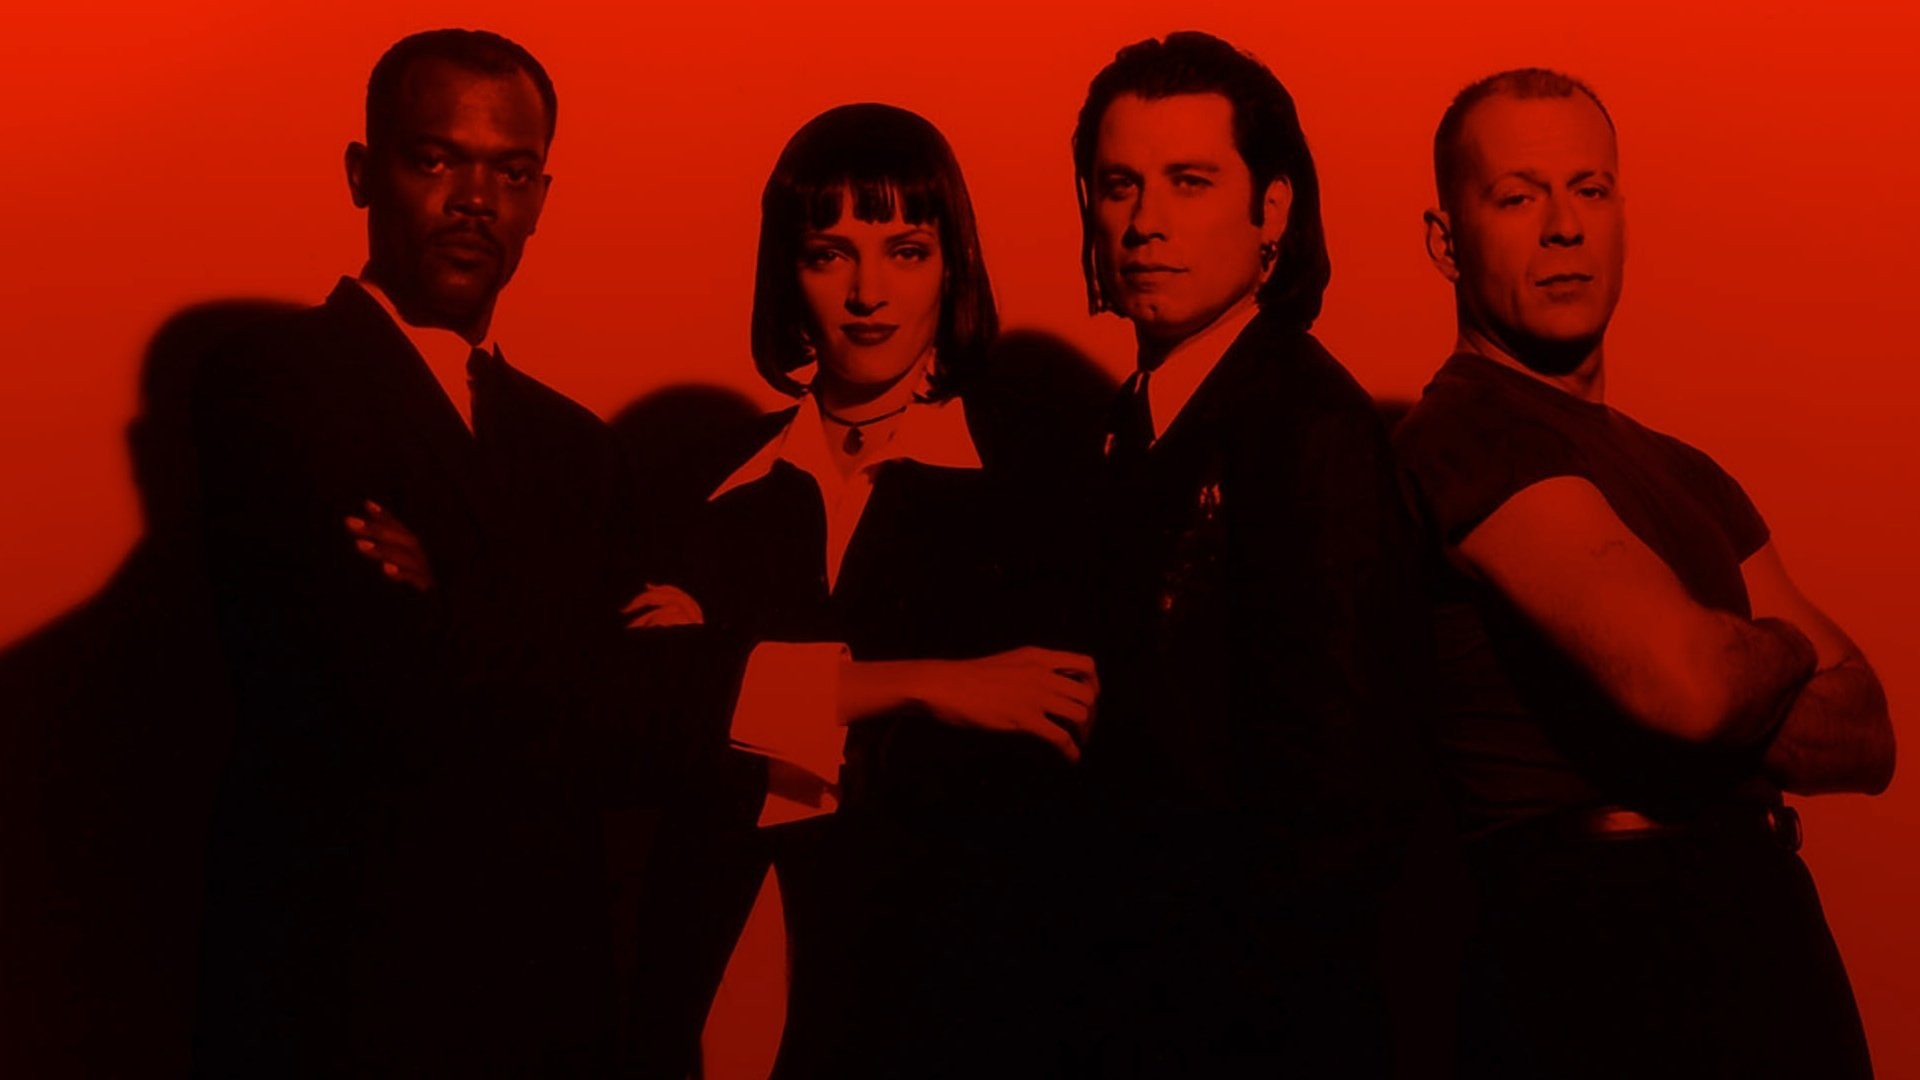 Pulp Fiction Wallpapers, Pictures, Images